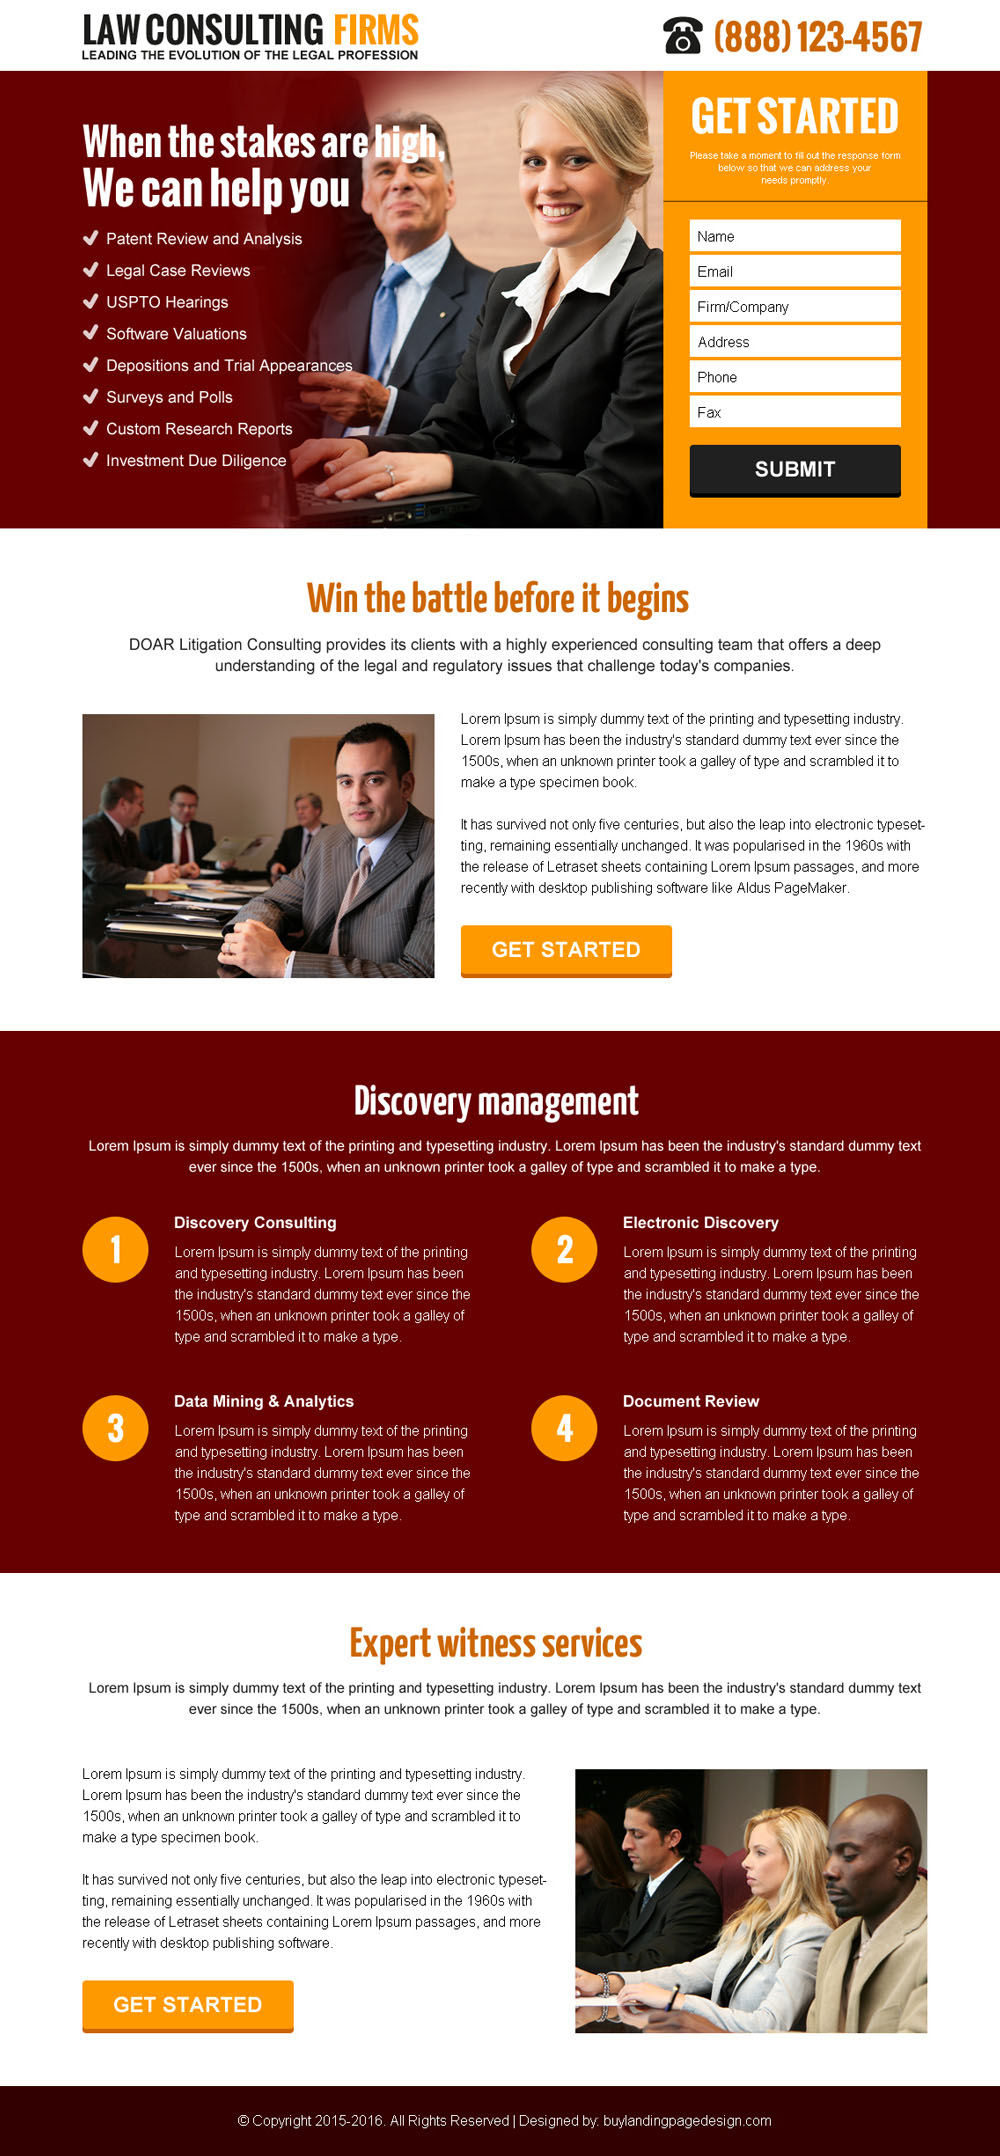 law-consulting-firms-legal-profession-lead-gen-converting-landing-page-design-007